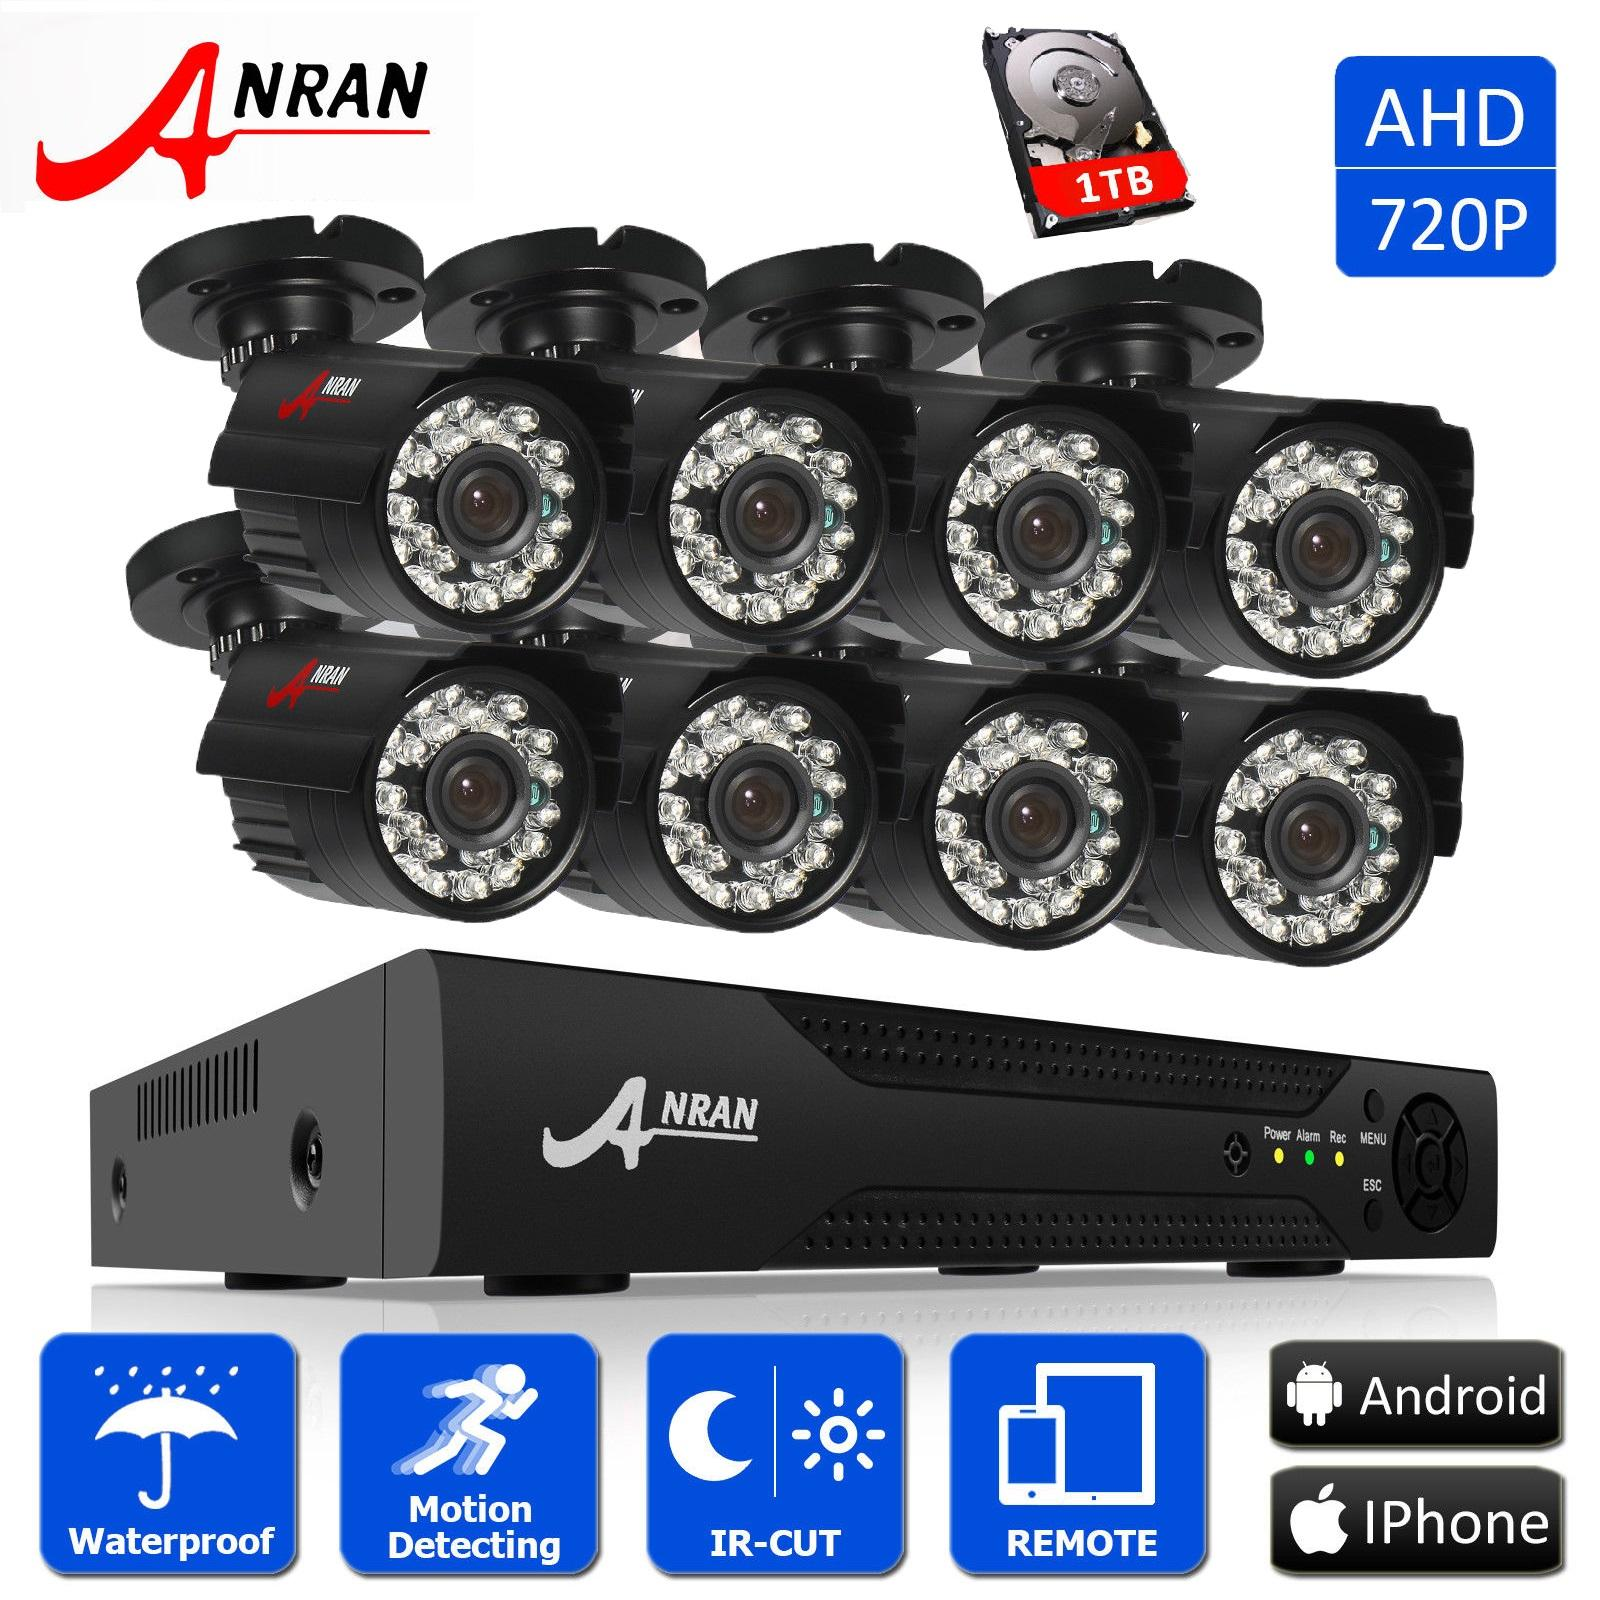 How To Buy Anran 8Ch 720P Ahd Cctv Dvr Security System With 8Pcs 1800Tvl Outdoor Night Vision Bullet Cameras